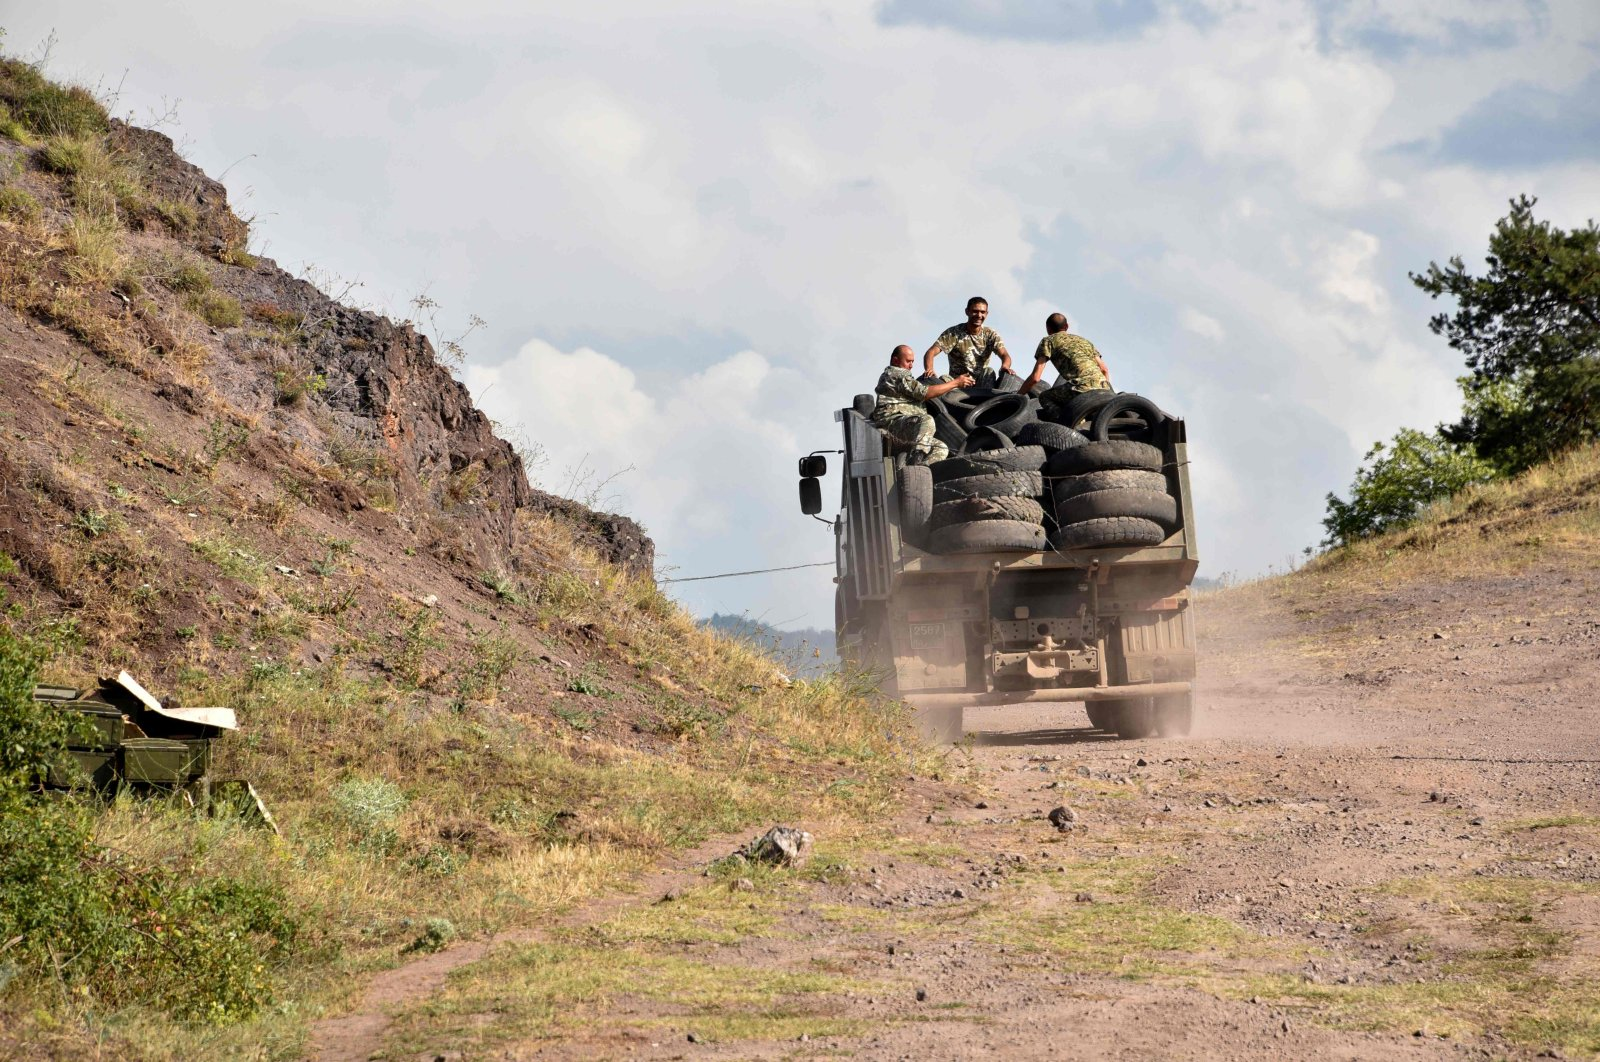 Armenian servicemen transport used tyres in the back of a truck to fortify their positions on the Armenian-Azerbaijani border near the village of Movses on July 15, 2020. (AFP Photo)